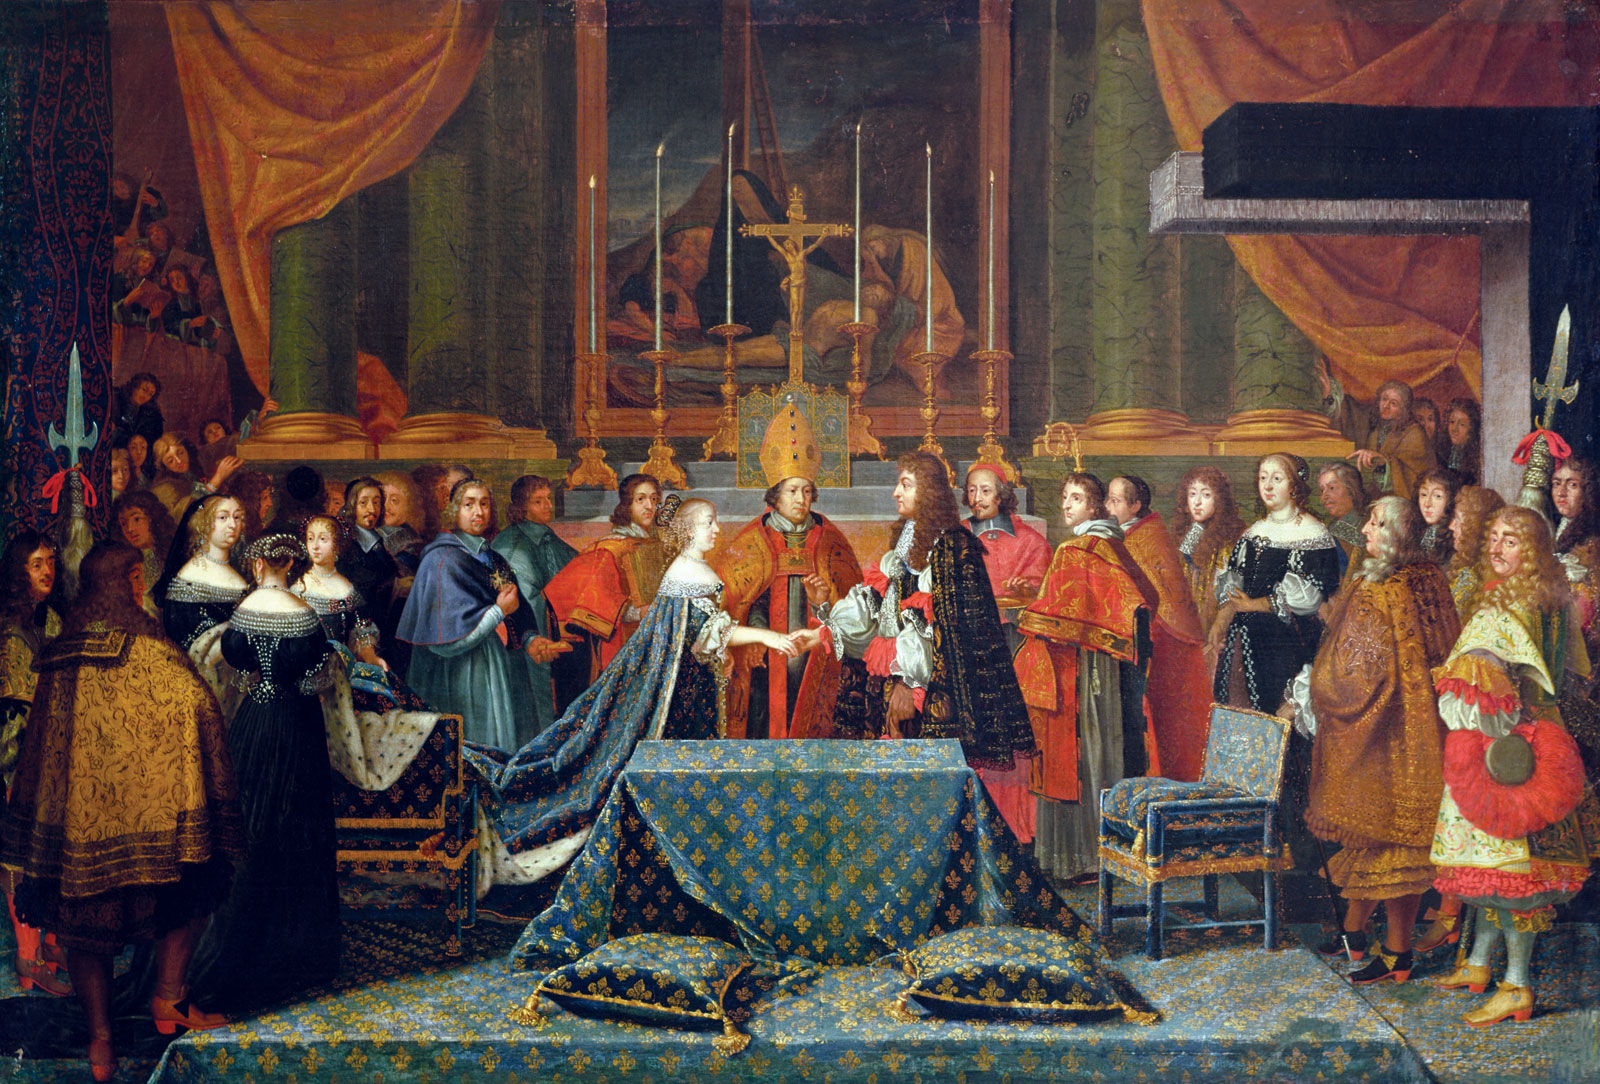 The wedding ceremony of Louis XIV and Marie-Thérèse at Saint-Jean-de-Luz